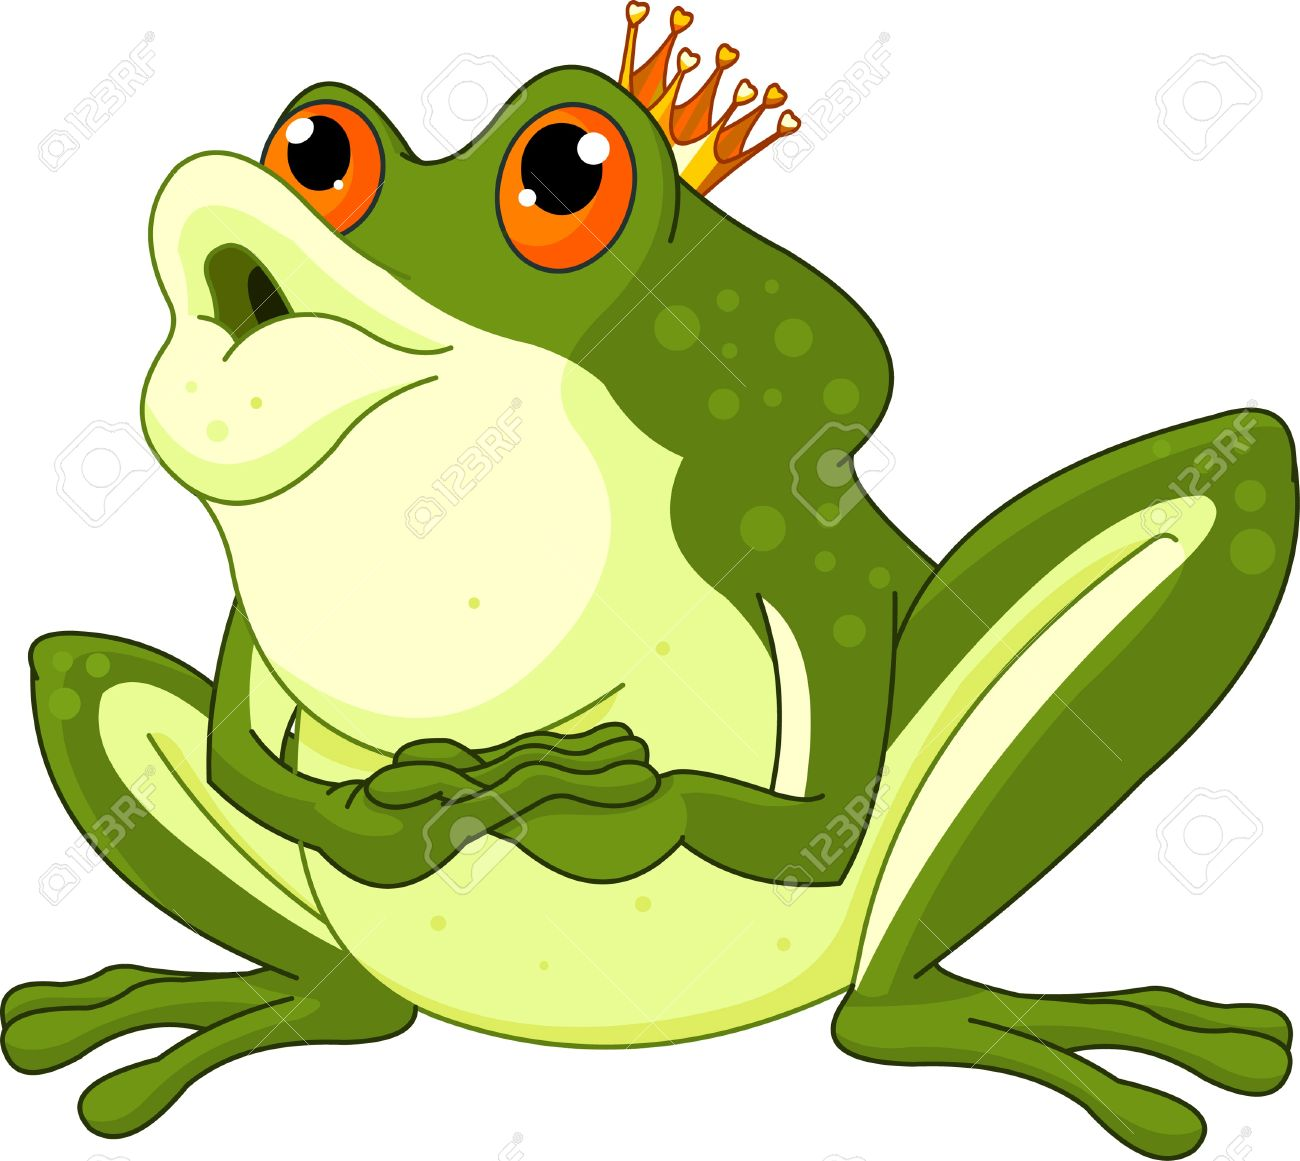 Clip Art Of A Frog Prince Waiting To Be Kissed Royalty Free.